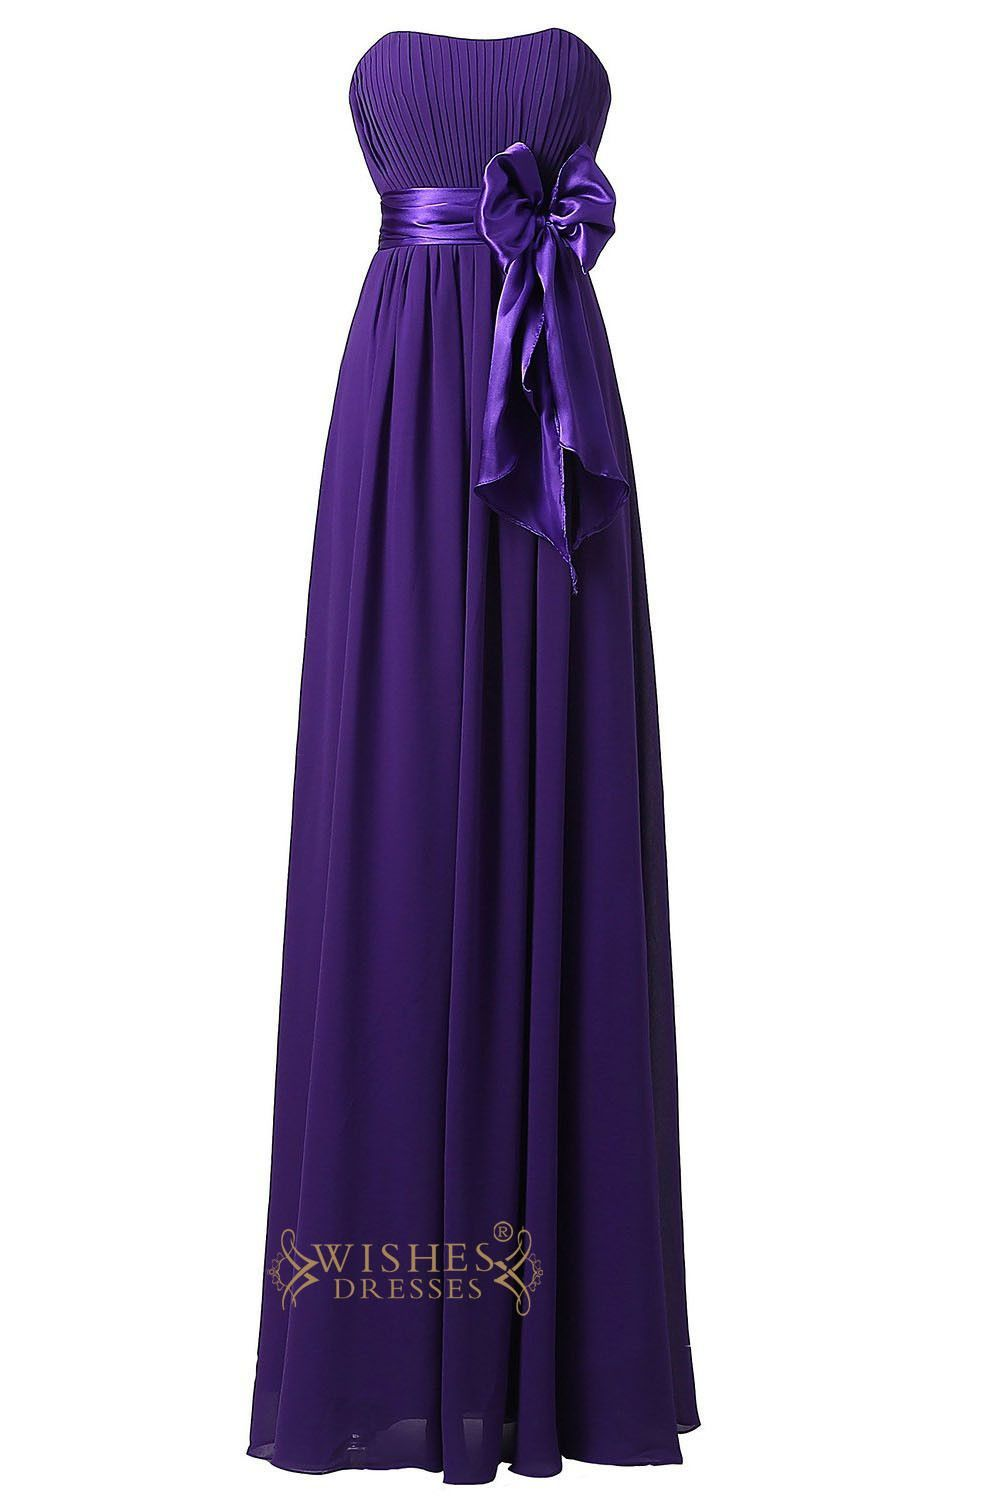 Purple Strapless Sweetheart Floor Length Bridesmaid Dress With ...